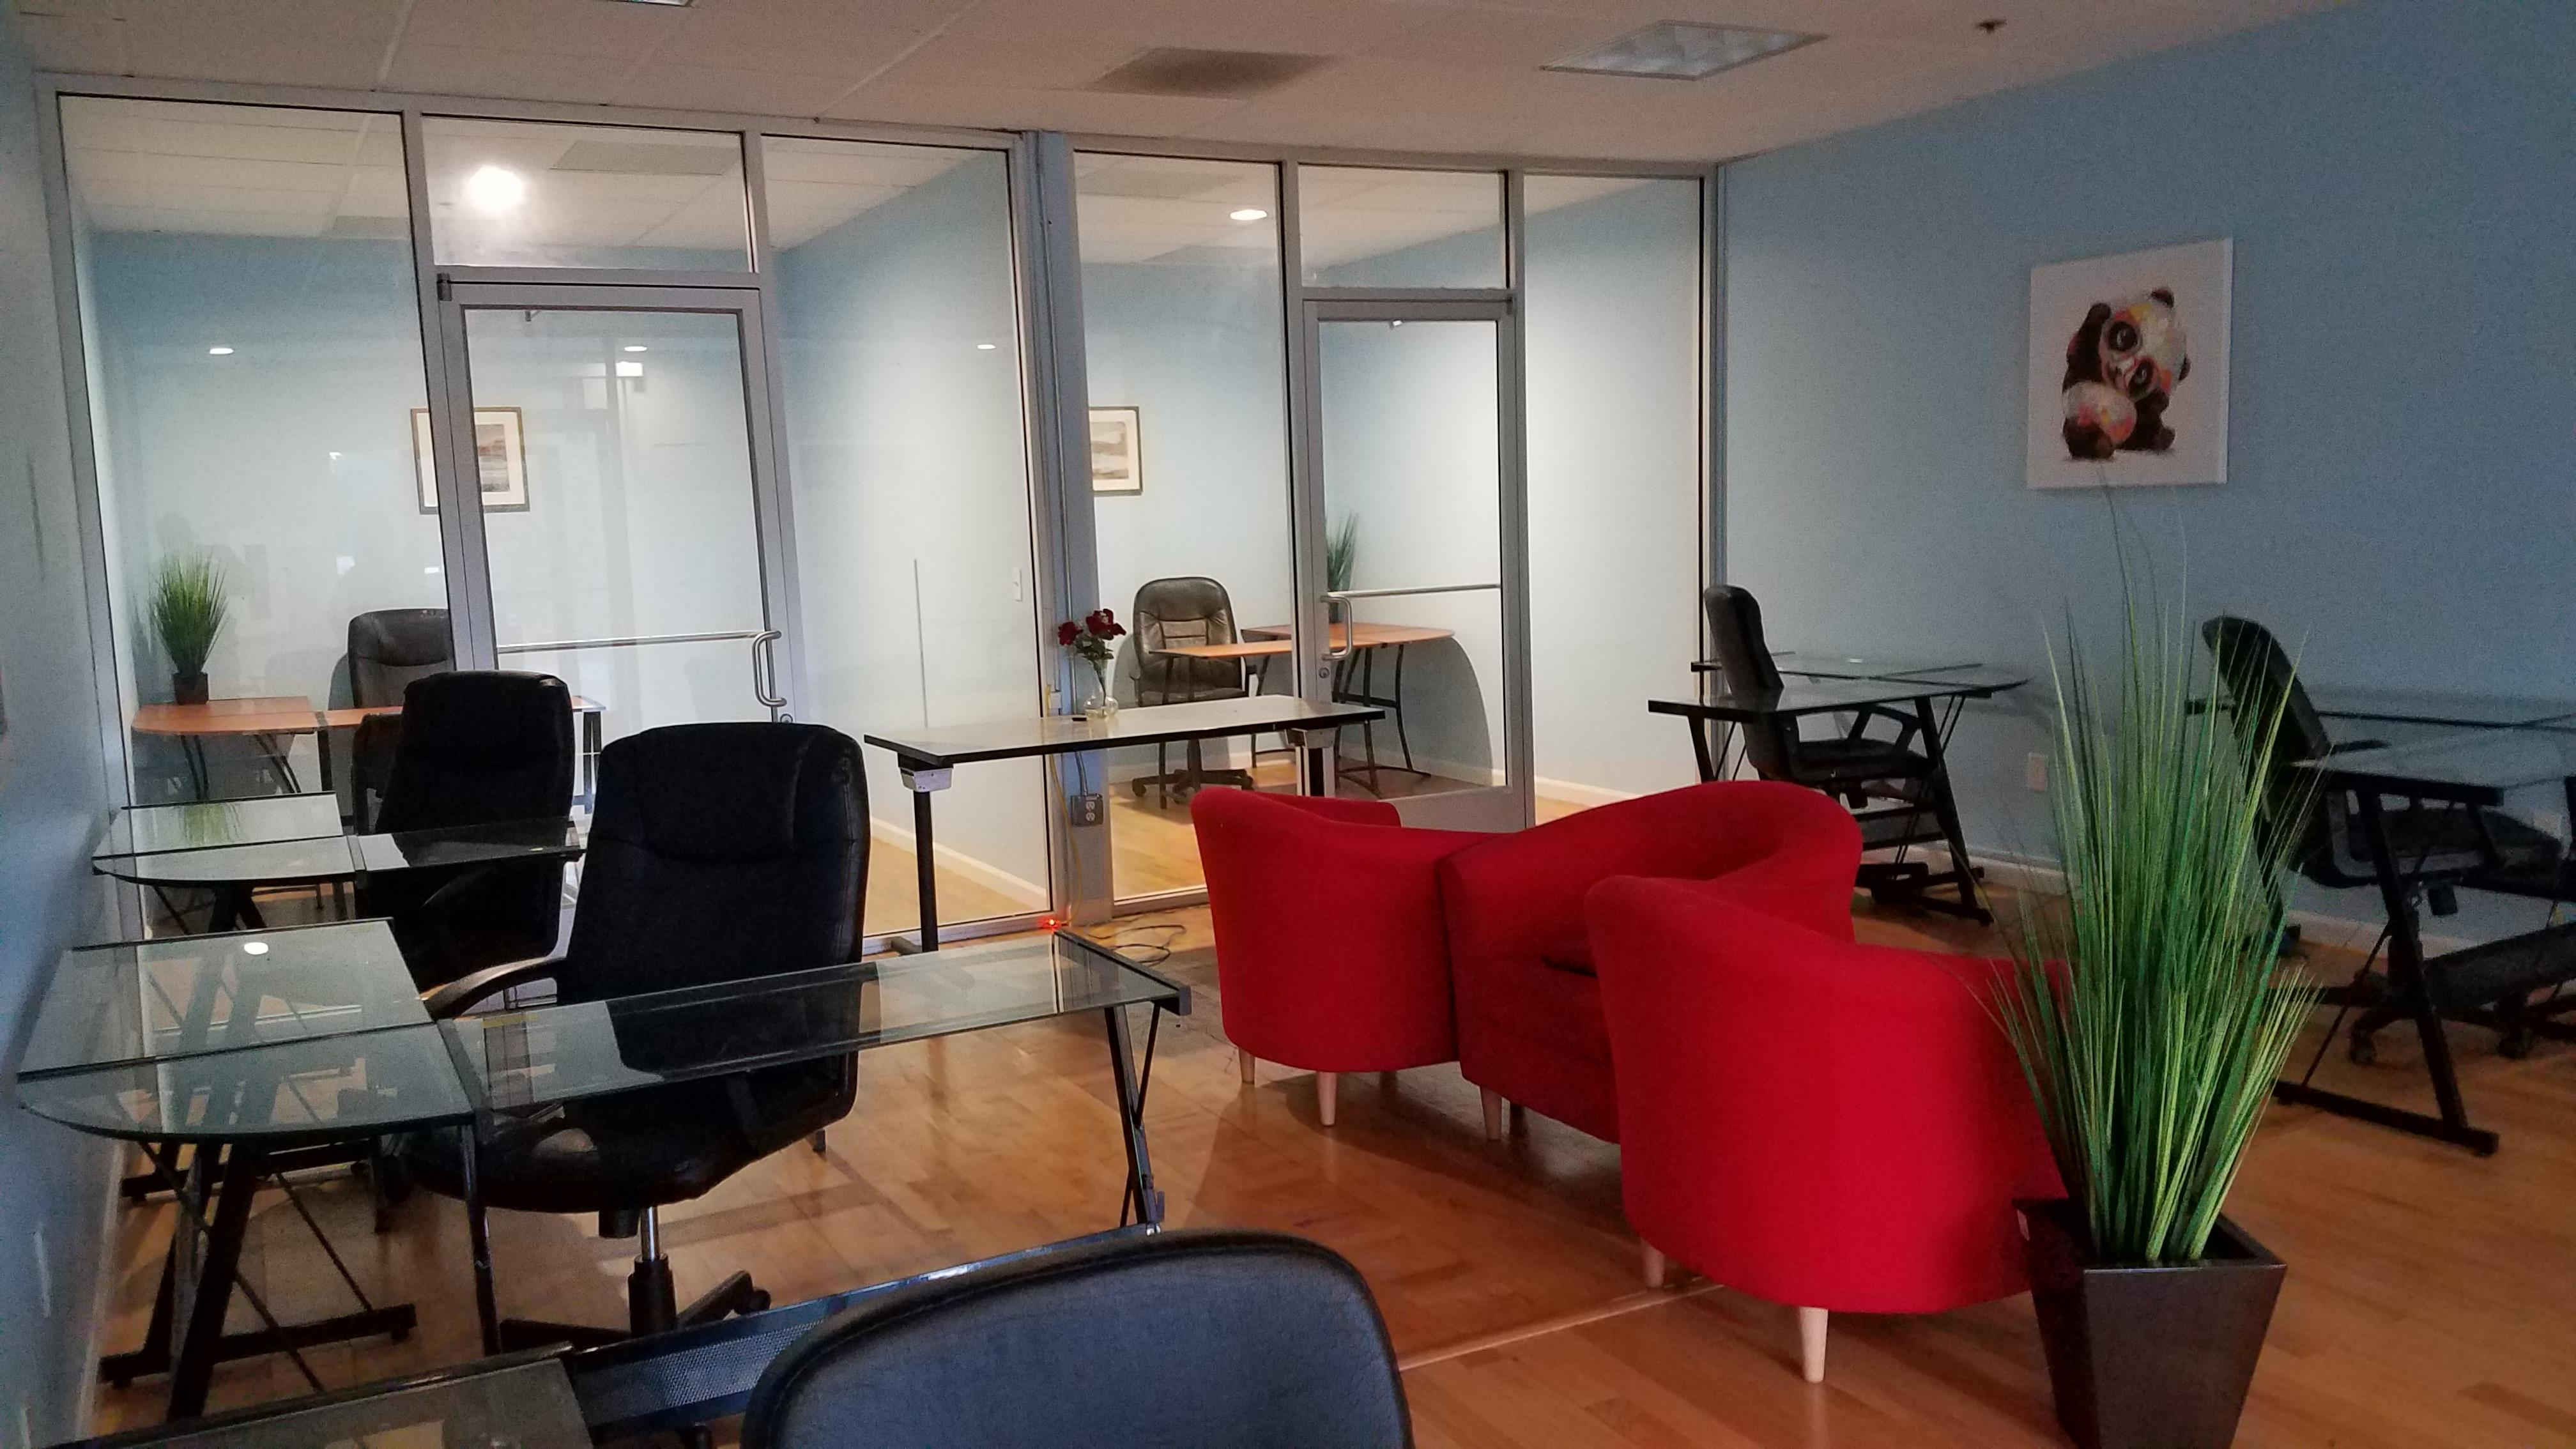 Voltogo - Executive suite office in Sunnyvale